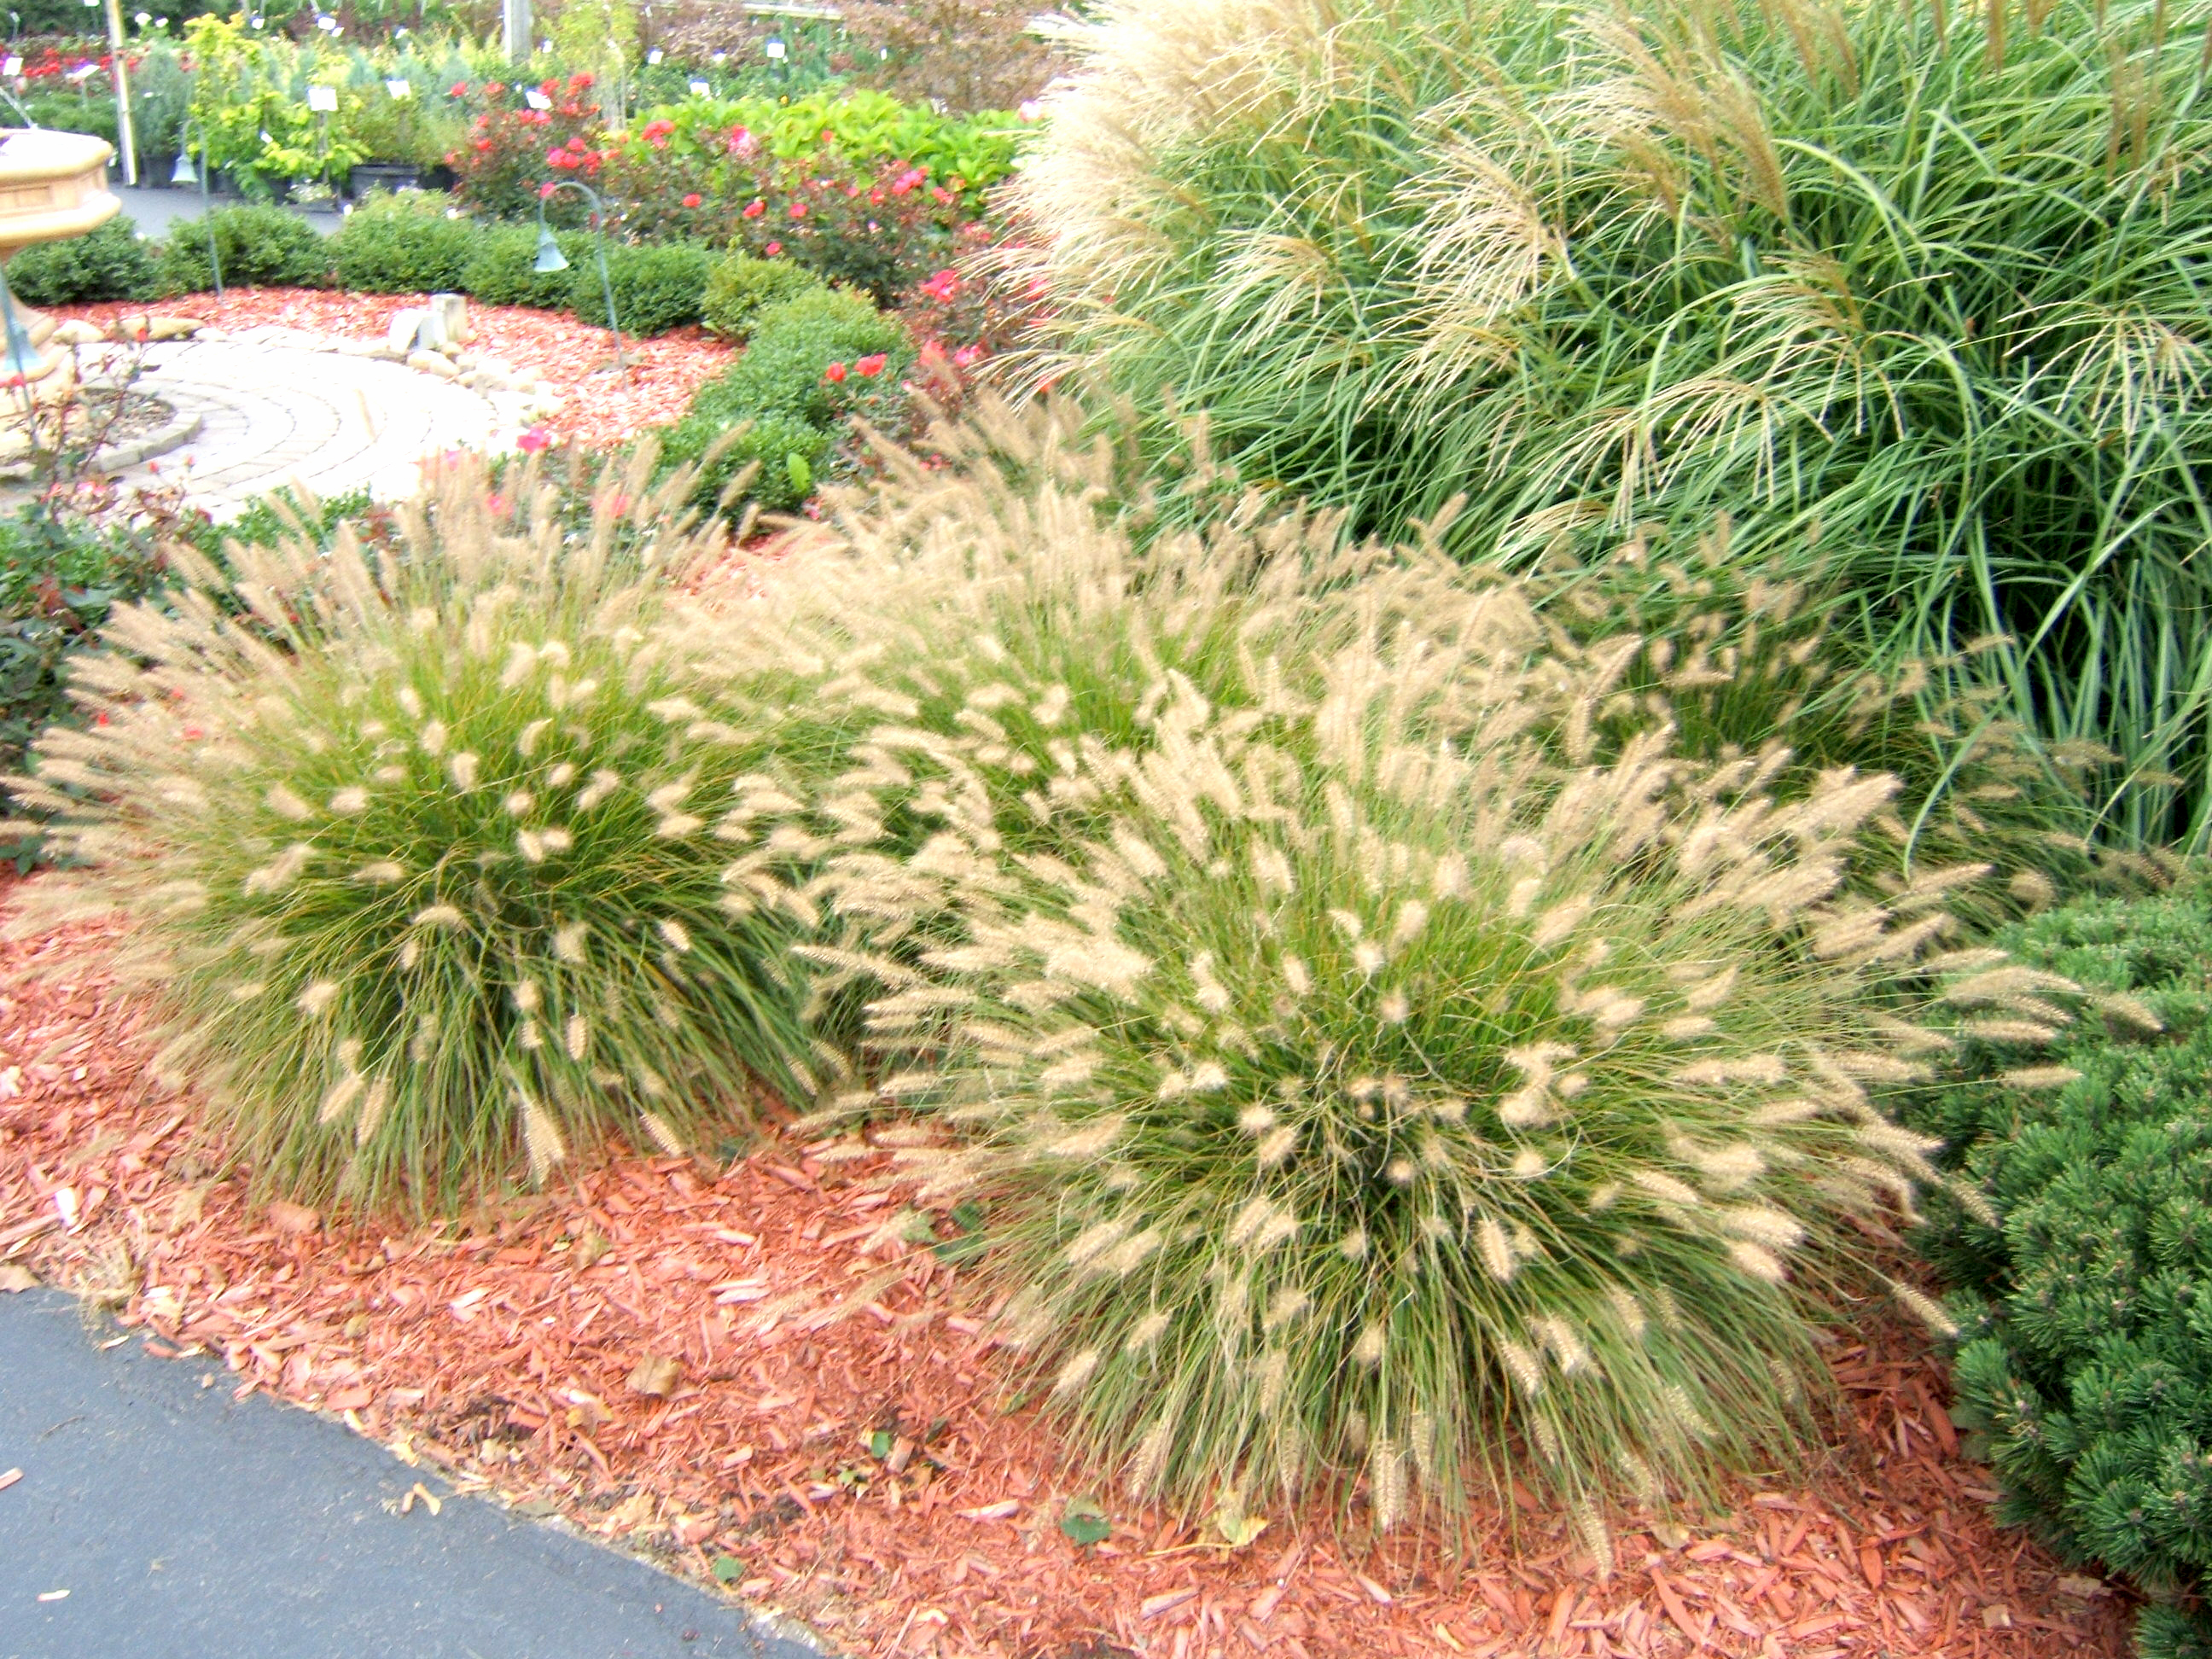 Get it growing ornamental grass adds beauty with minimum for Best ornamental grasses for landscaping